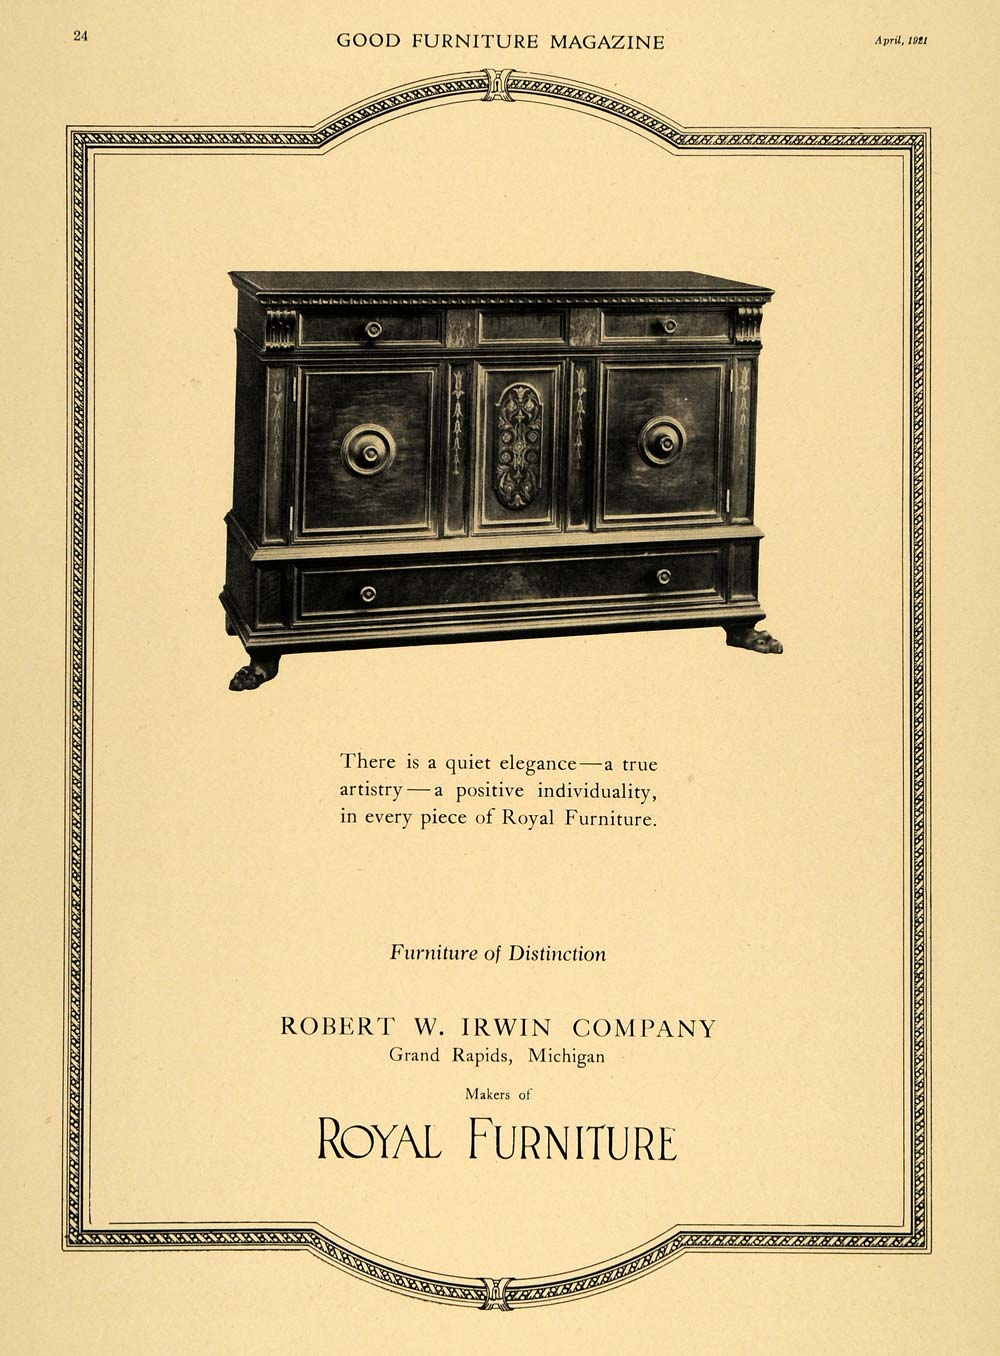 Robert W_ Irwin Furniture Company http://www.ebay.com/itm/1921-Ad-Robert-W-Irwin-Co-Royal-Furniture-Cabinet-ORIGINAL-ADVERTISING-/310390205214